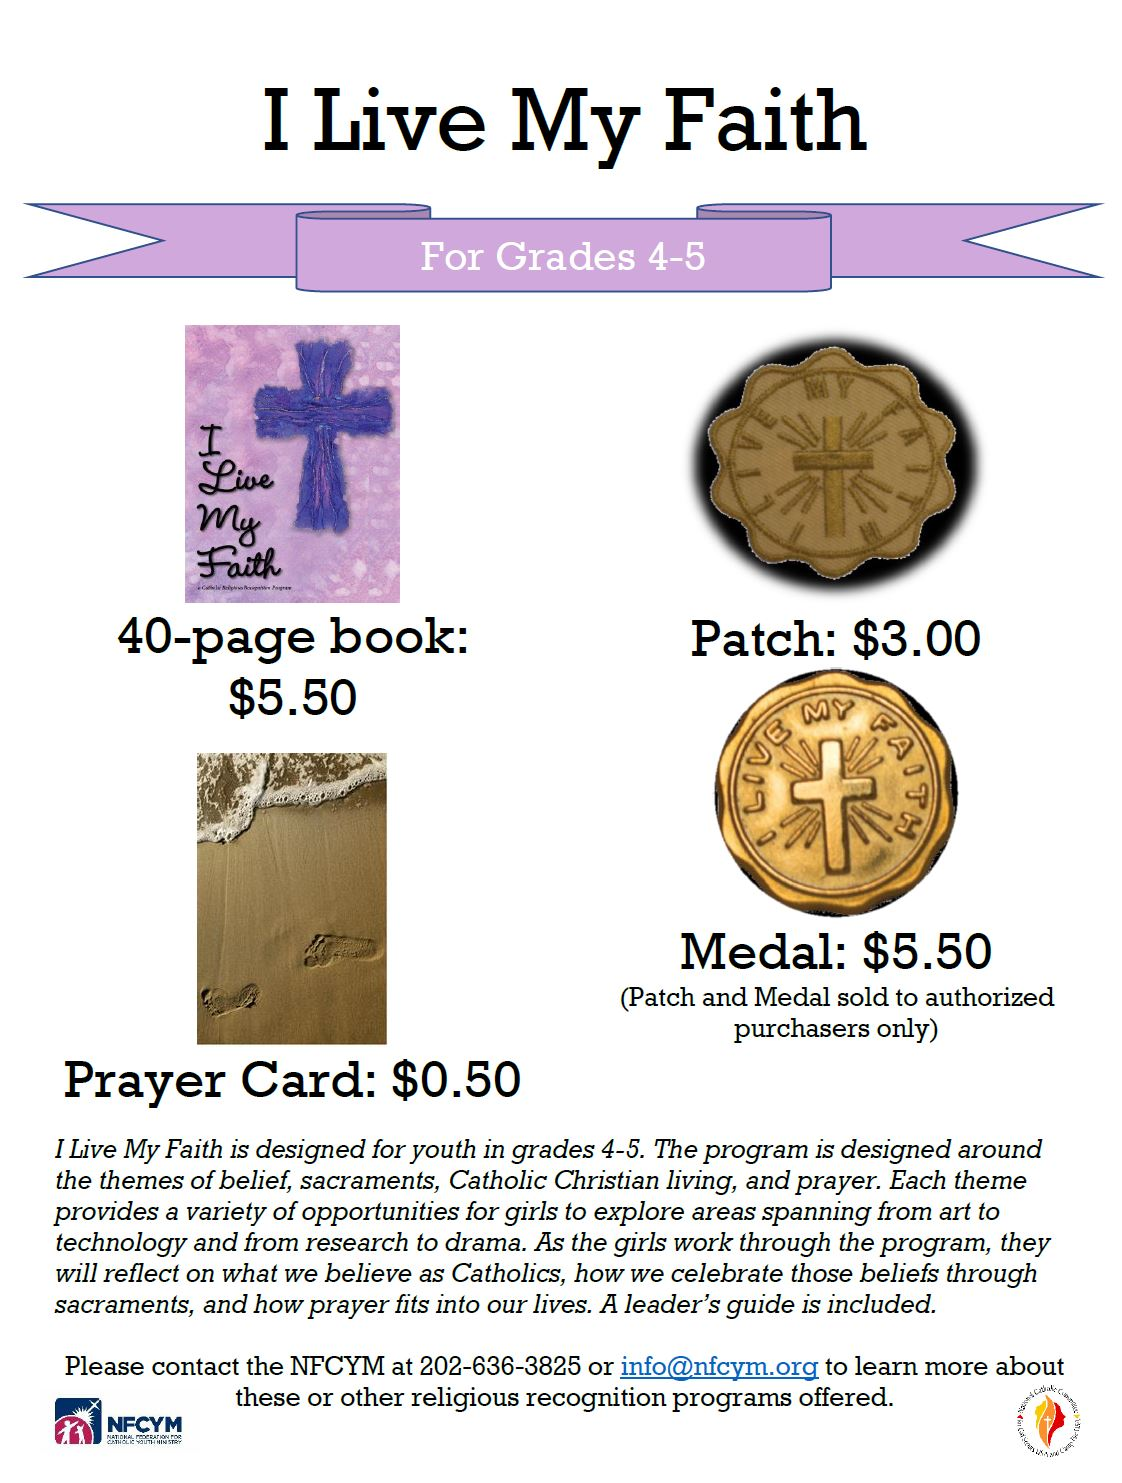 Click Image Above to Purchase Book and Prayer Card See Authorized Purchaser List to Purchase Medal and Patch